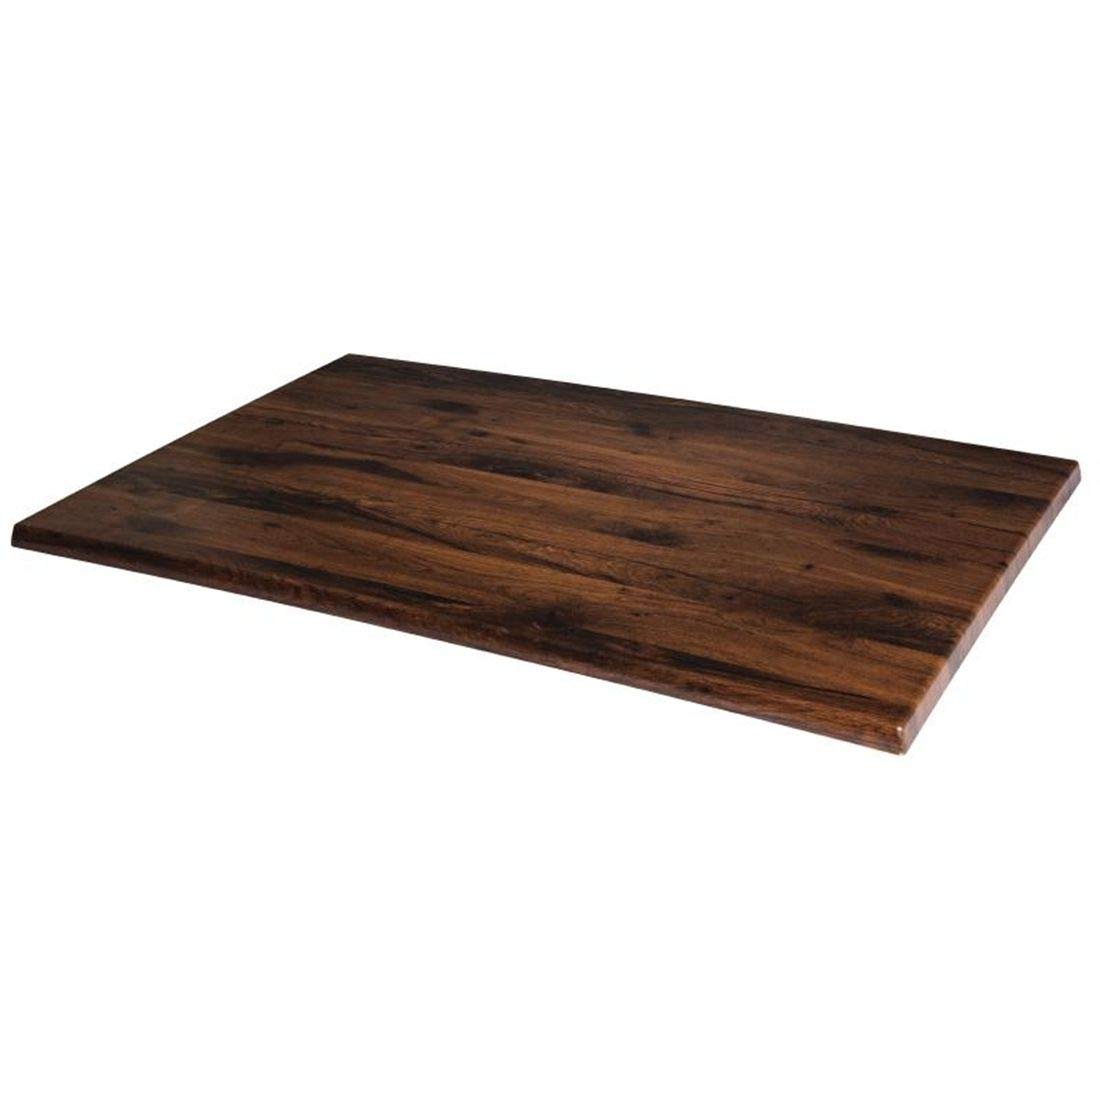 Werzalit plus GR387 rectangular tablero de la mesa, roble, 1100 mm)